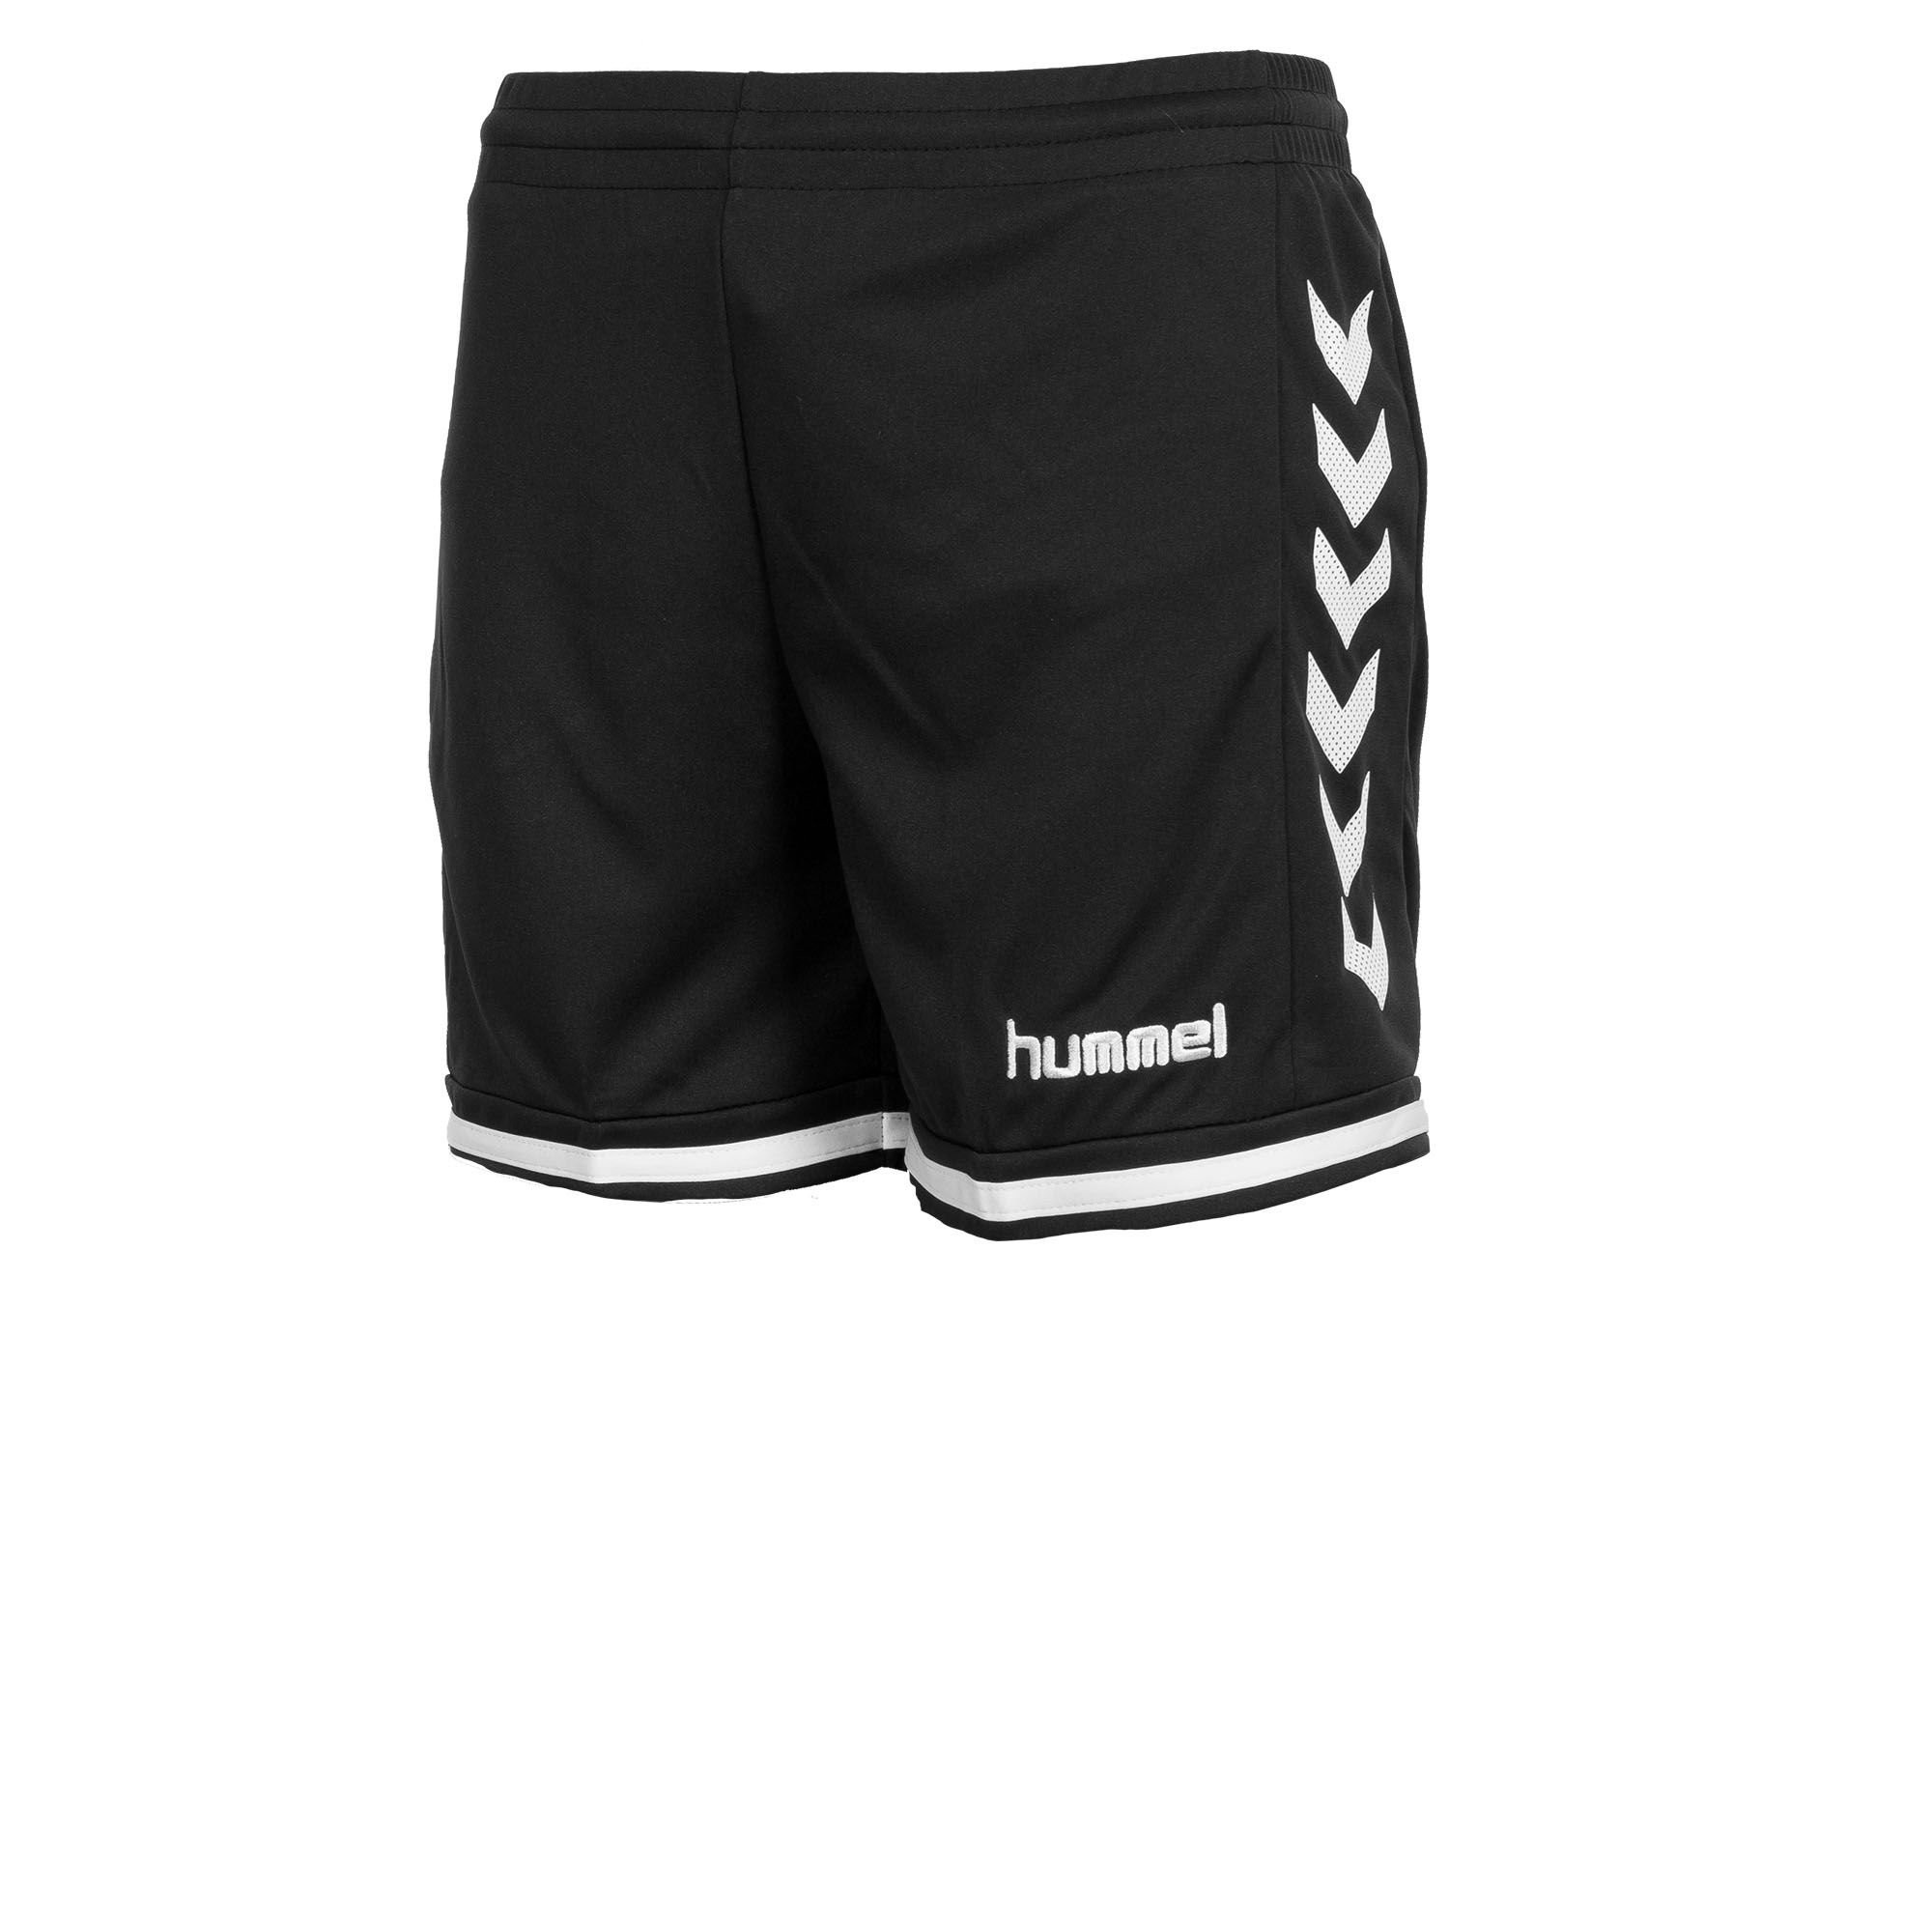 Hummel Lyon Indoor short Ladies zwartwit Broekjes